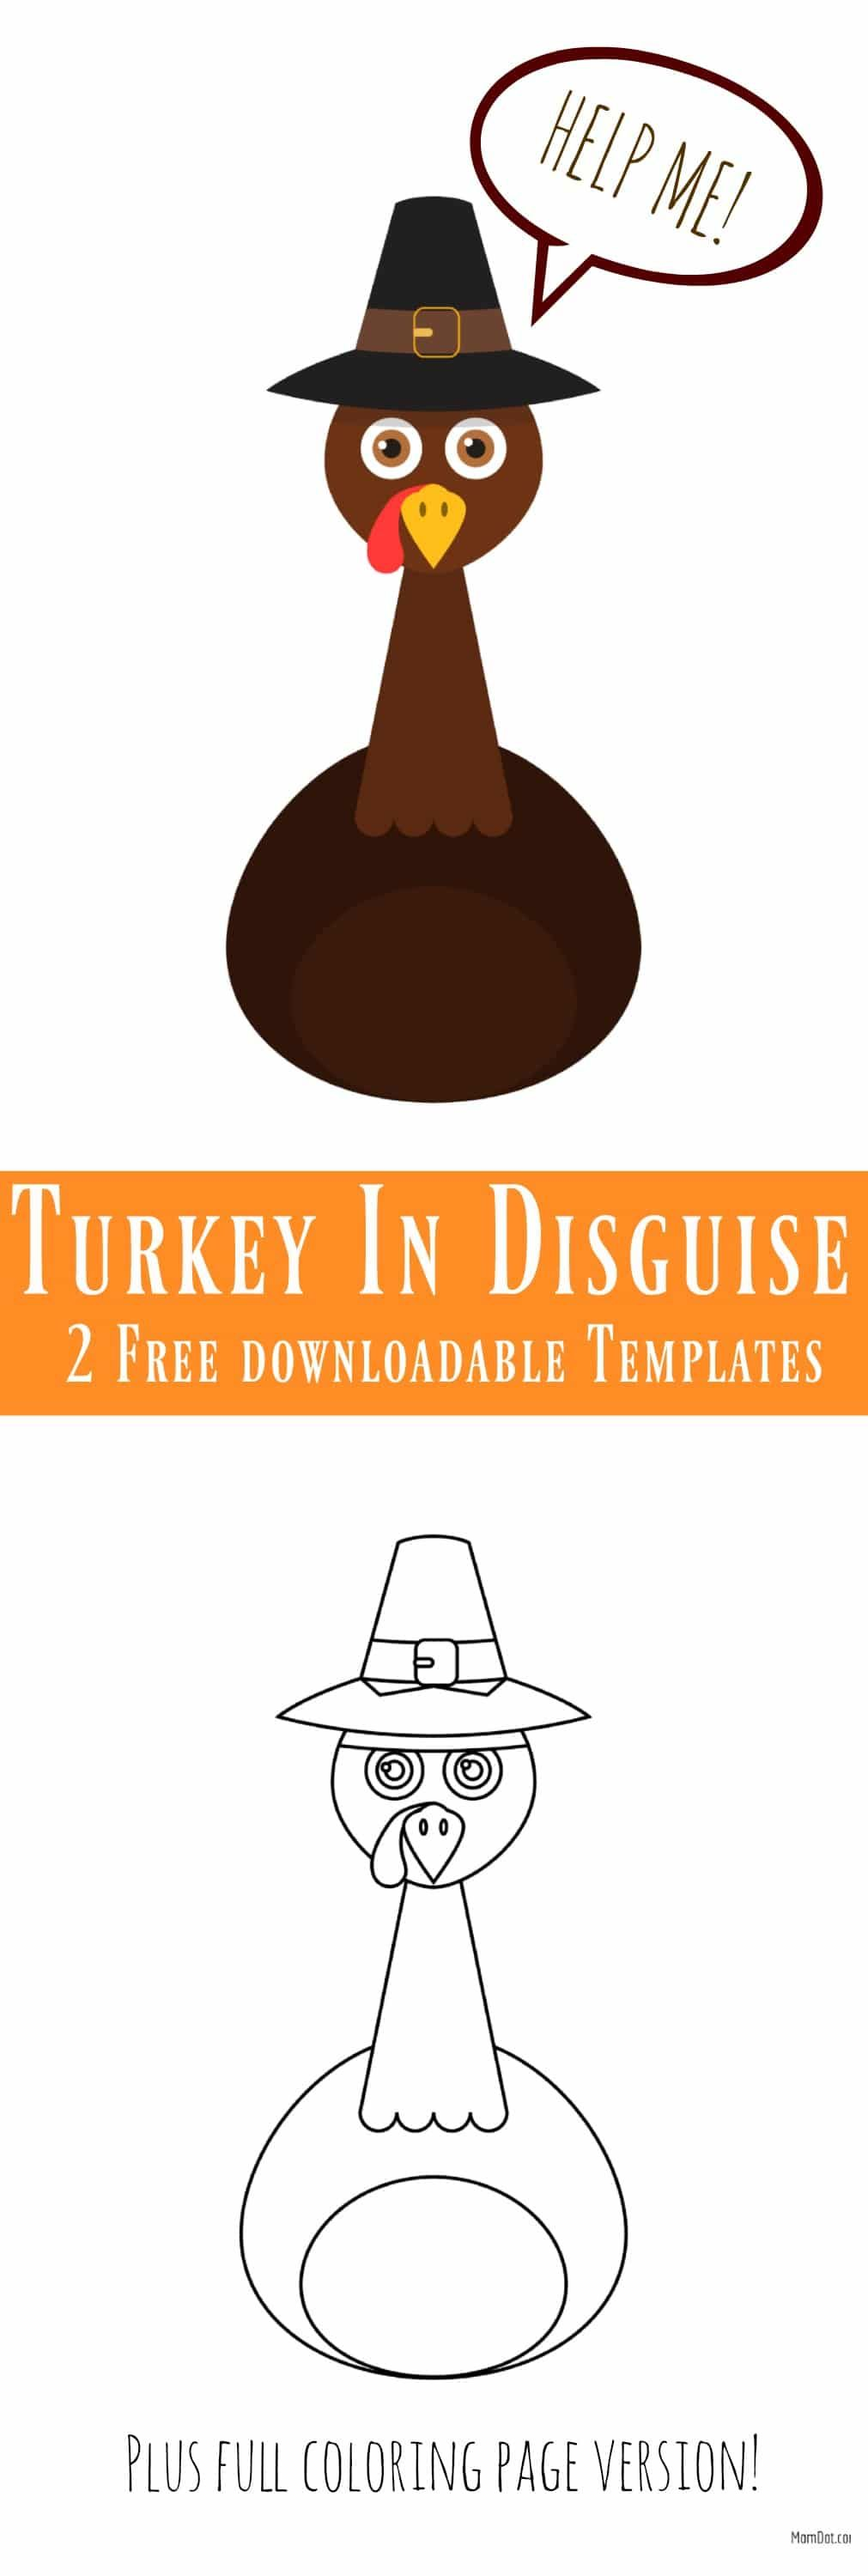 Turkey in Disguise Free Printable Template -   18 disguise a turkey project printable template ideas